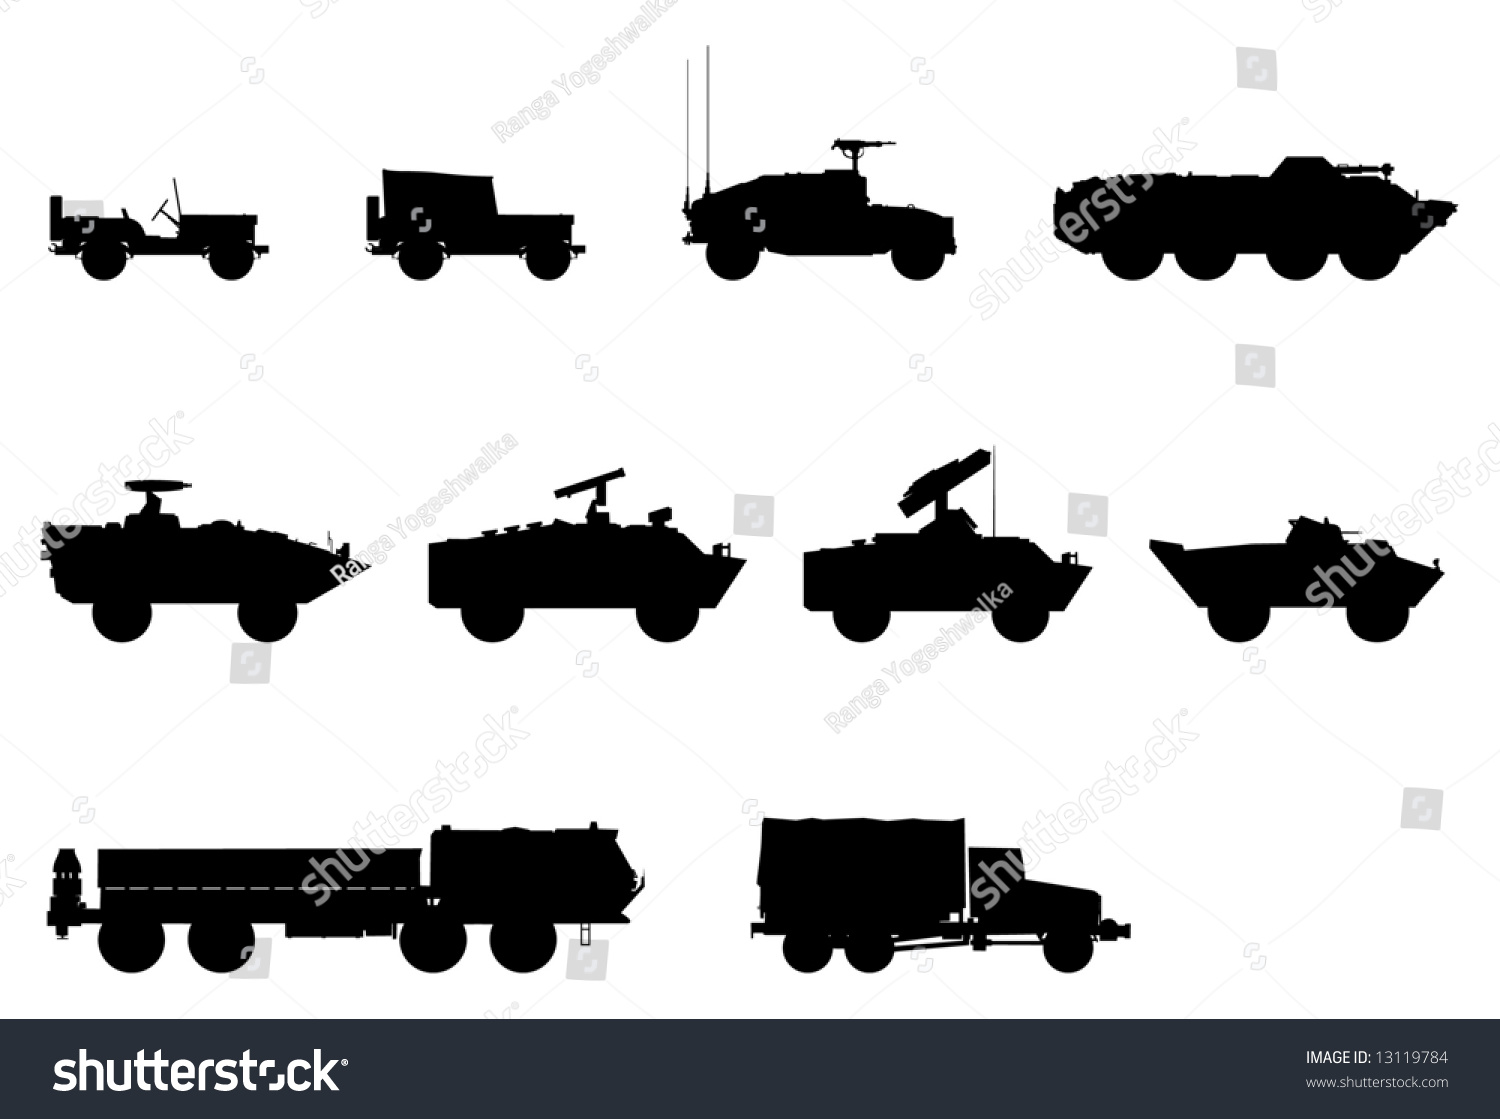 vector silhouettes of military vehicles 13119784